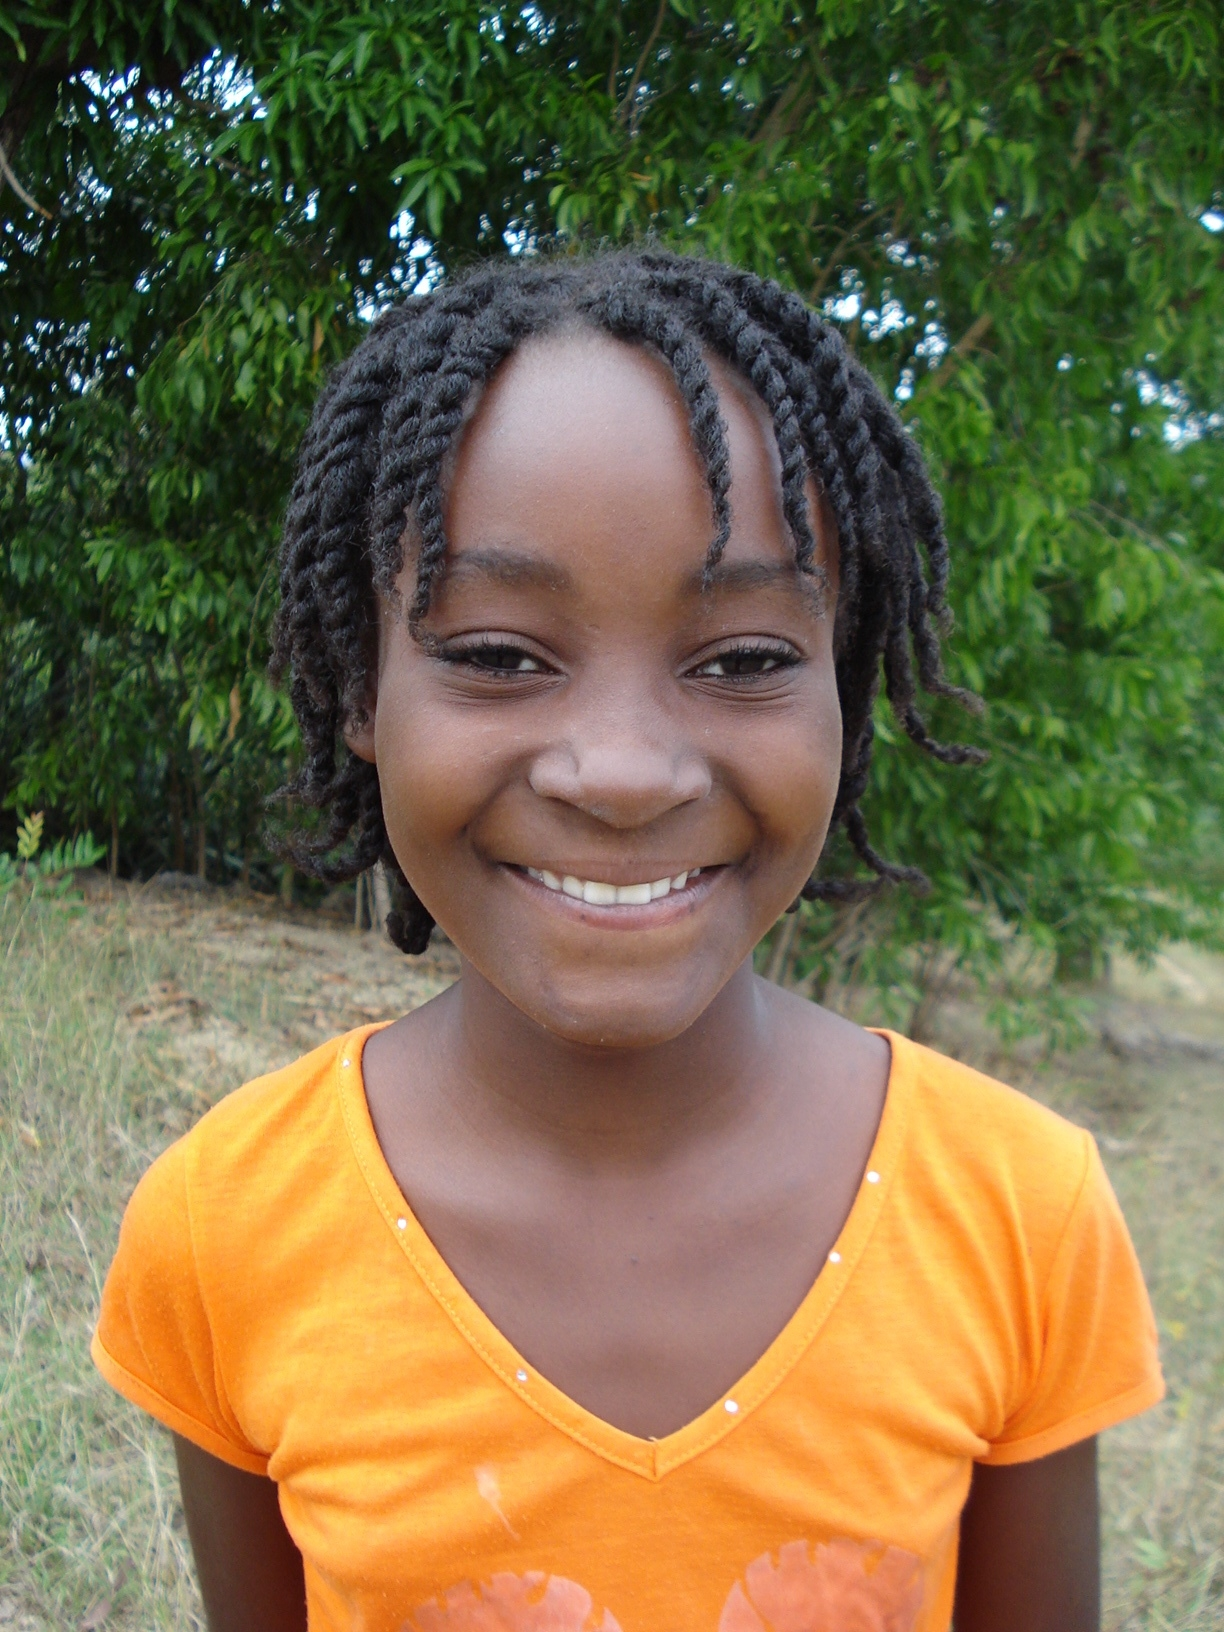 Loudouide, a sponsored child in Haiti, in her community.